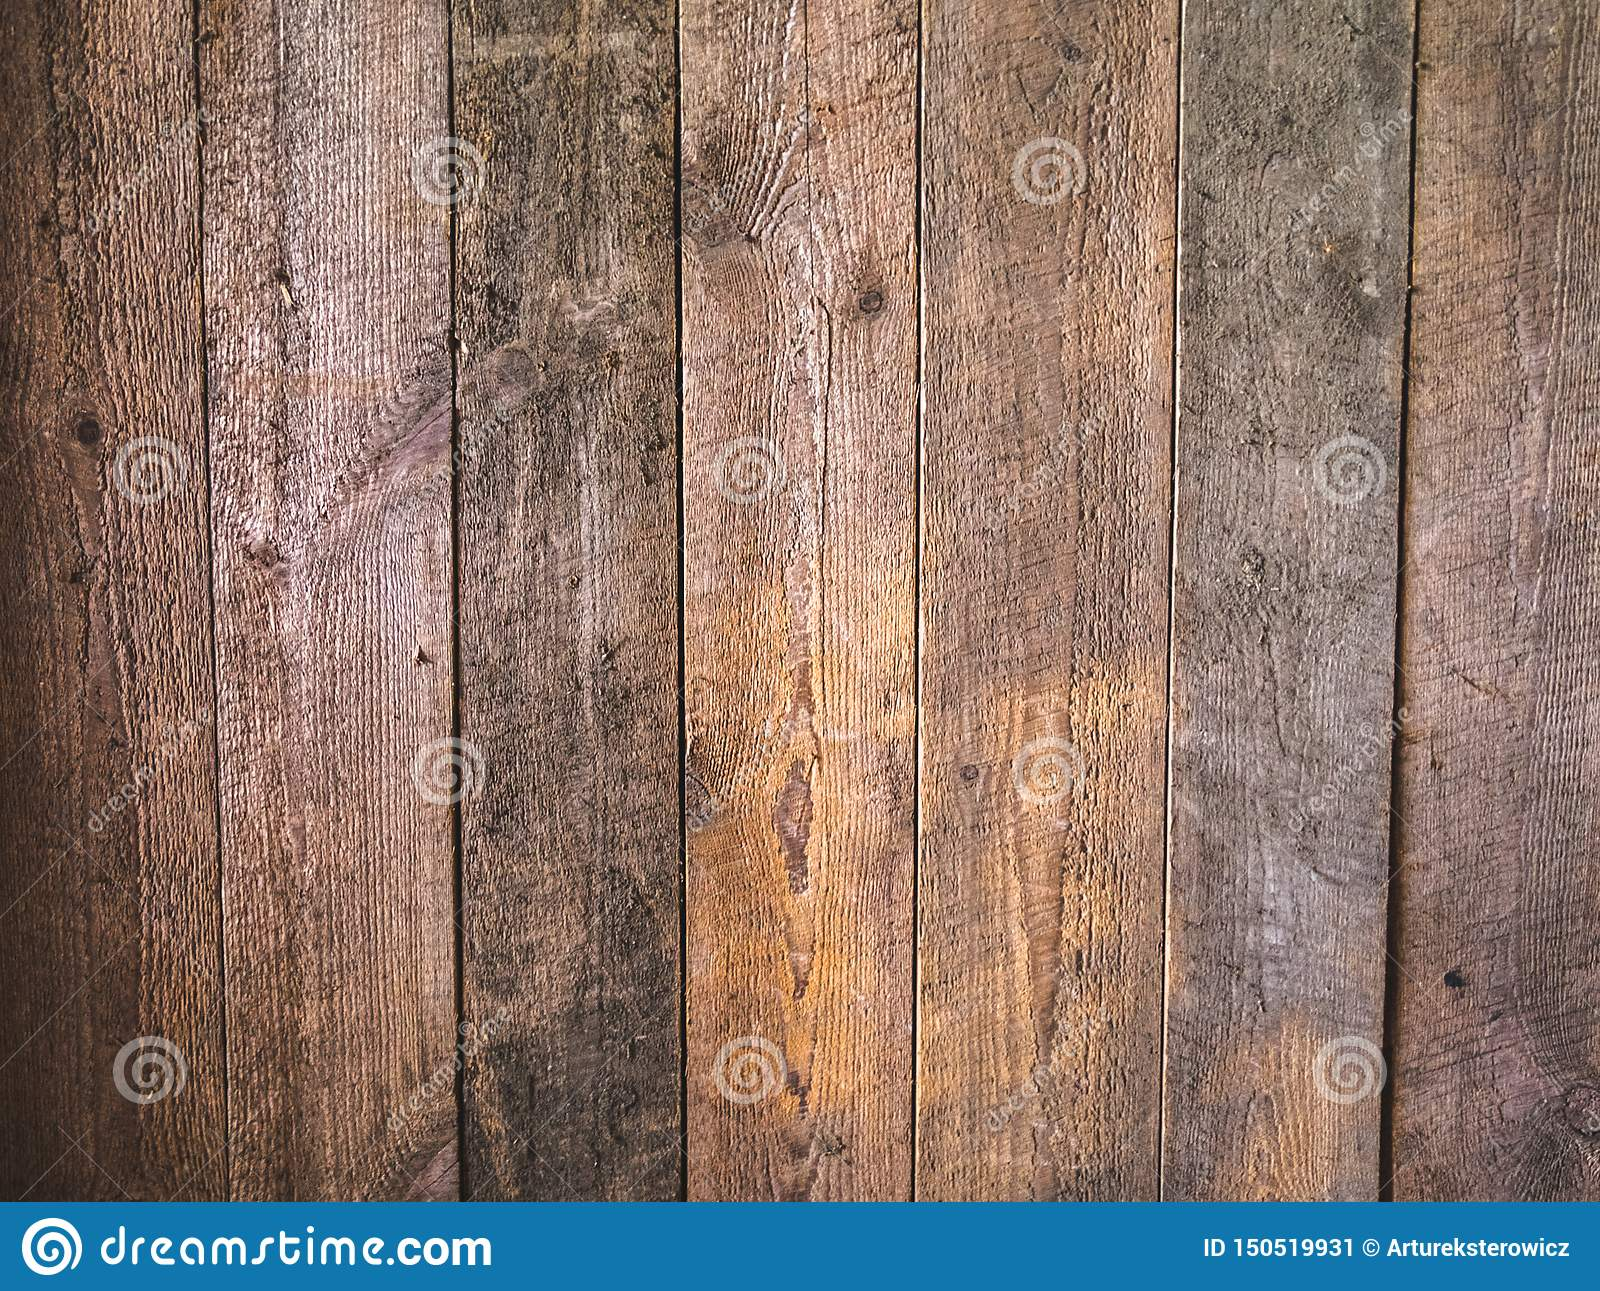 Background that looks like wooden boards